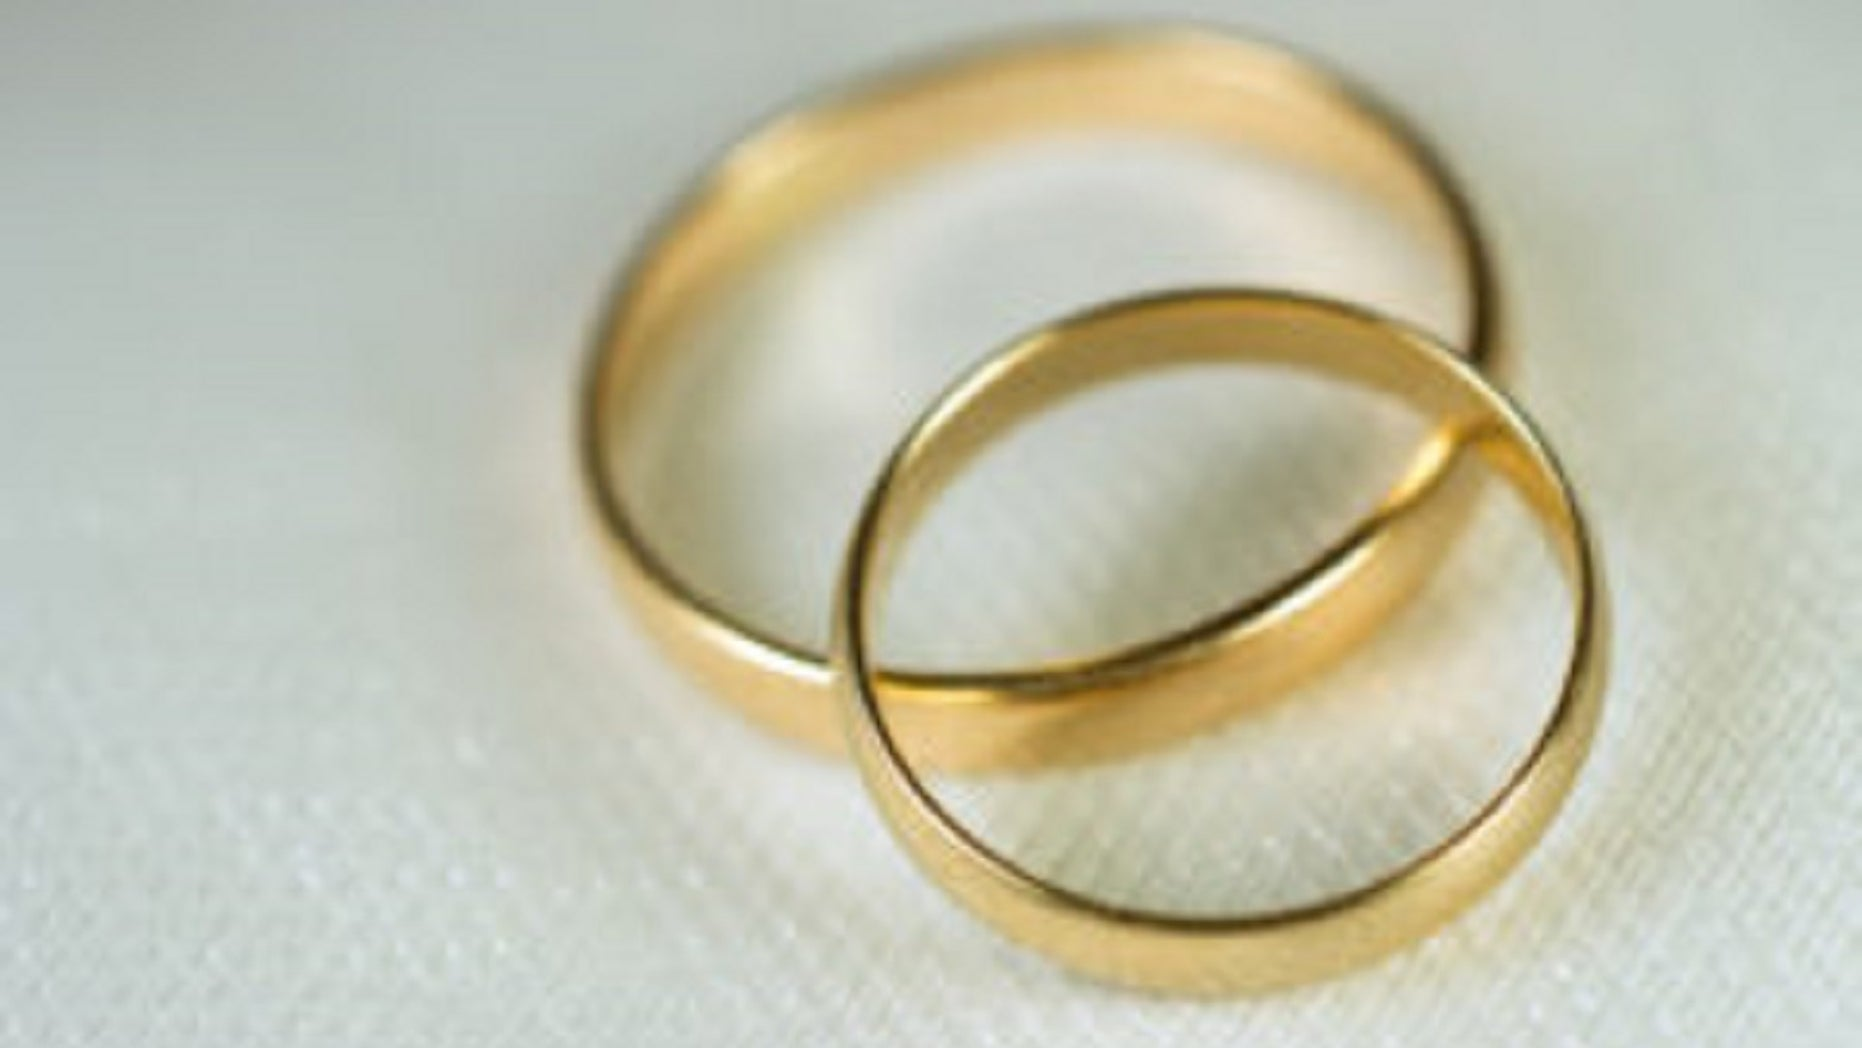 A Massachusetts man avoided jail time in a sham marriage scheme.